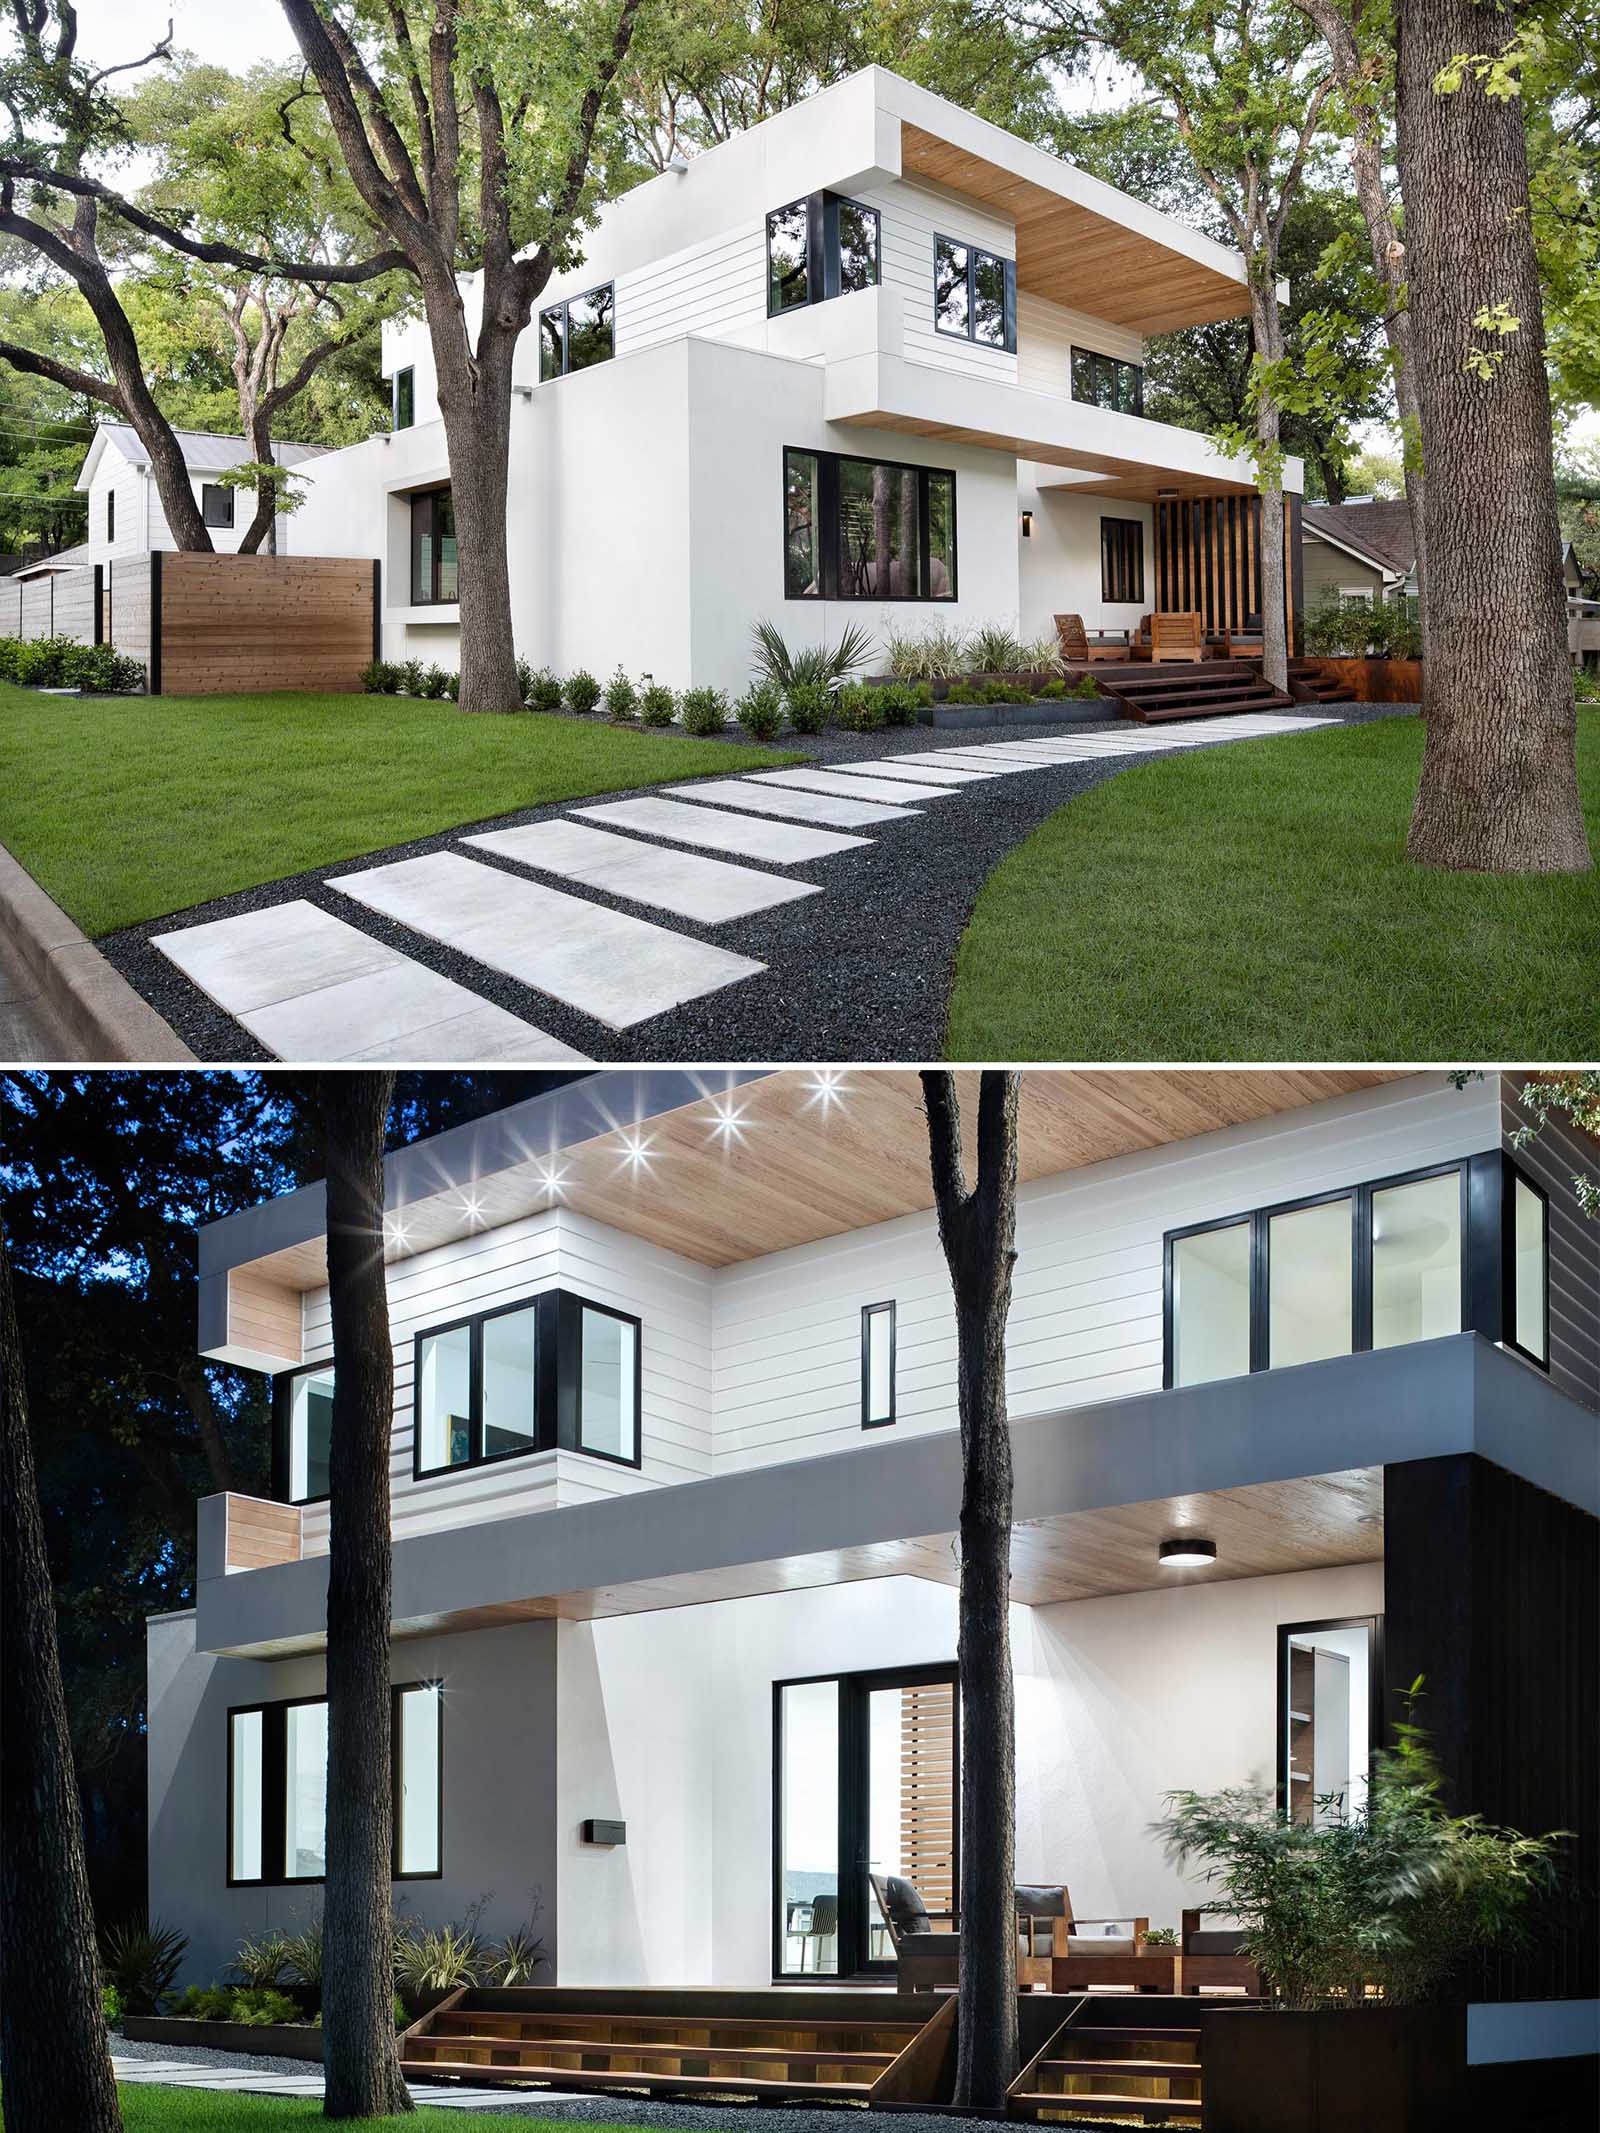 A modern home that has a bright white exterior with wood accents, a small porch, and landscaped front garden with a path.